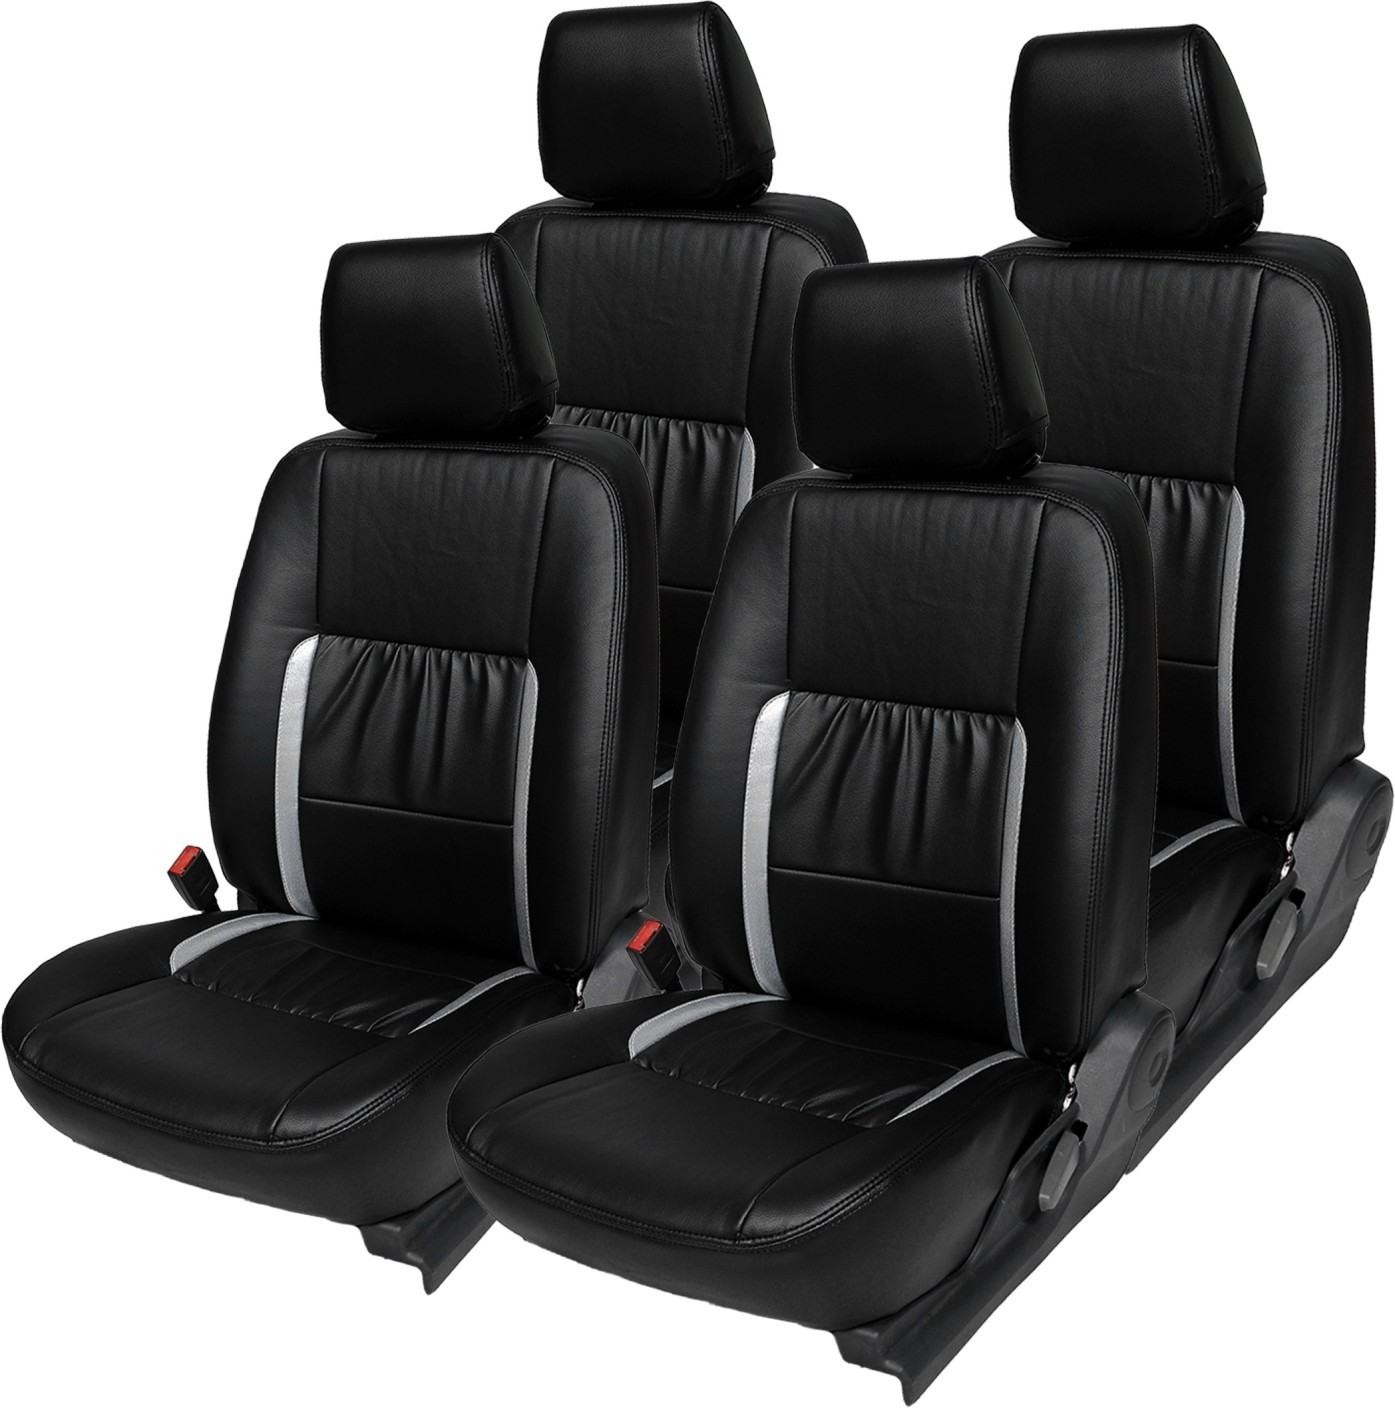 Leatherette Car Seat Covers Uk